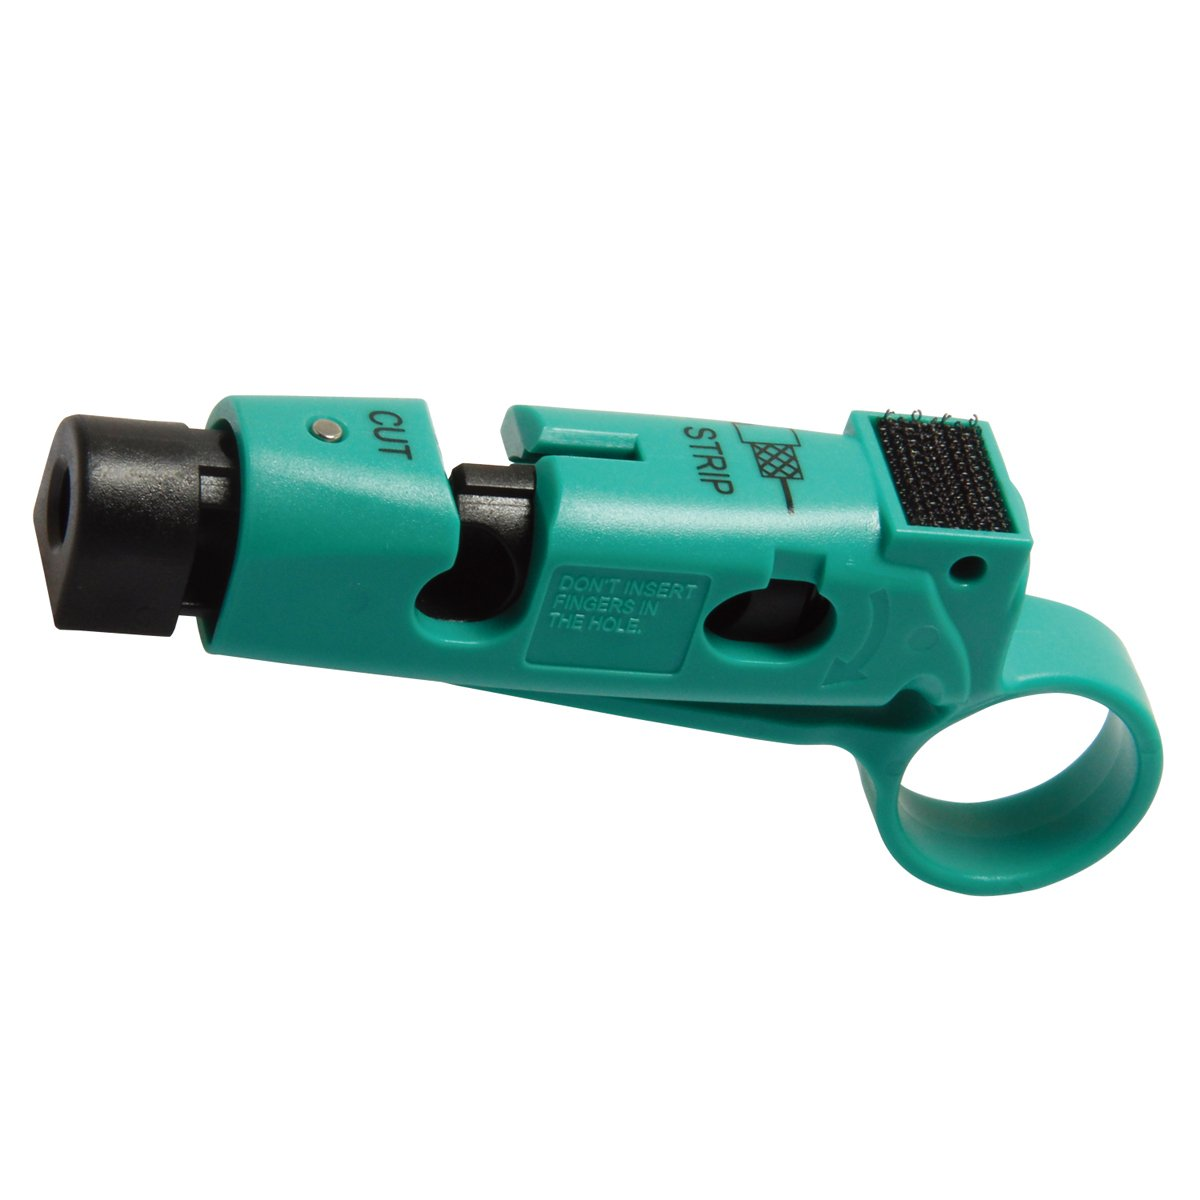 CP-507 Coaxial Cable Stripper/Cutter for RG-59, RG-6 Coaxial Cable Wire Stripper Tool 111mm Length by Tpmall (Image #4)